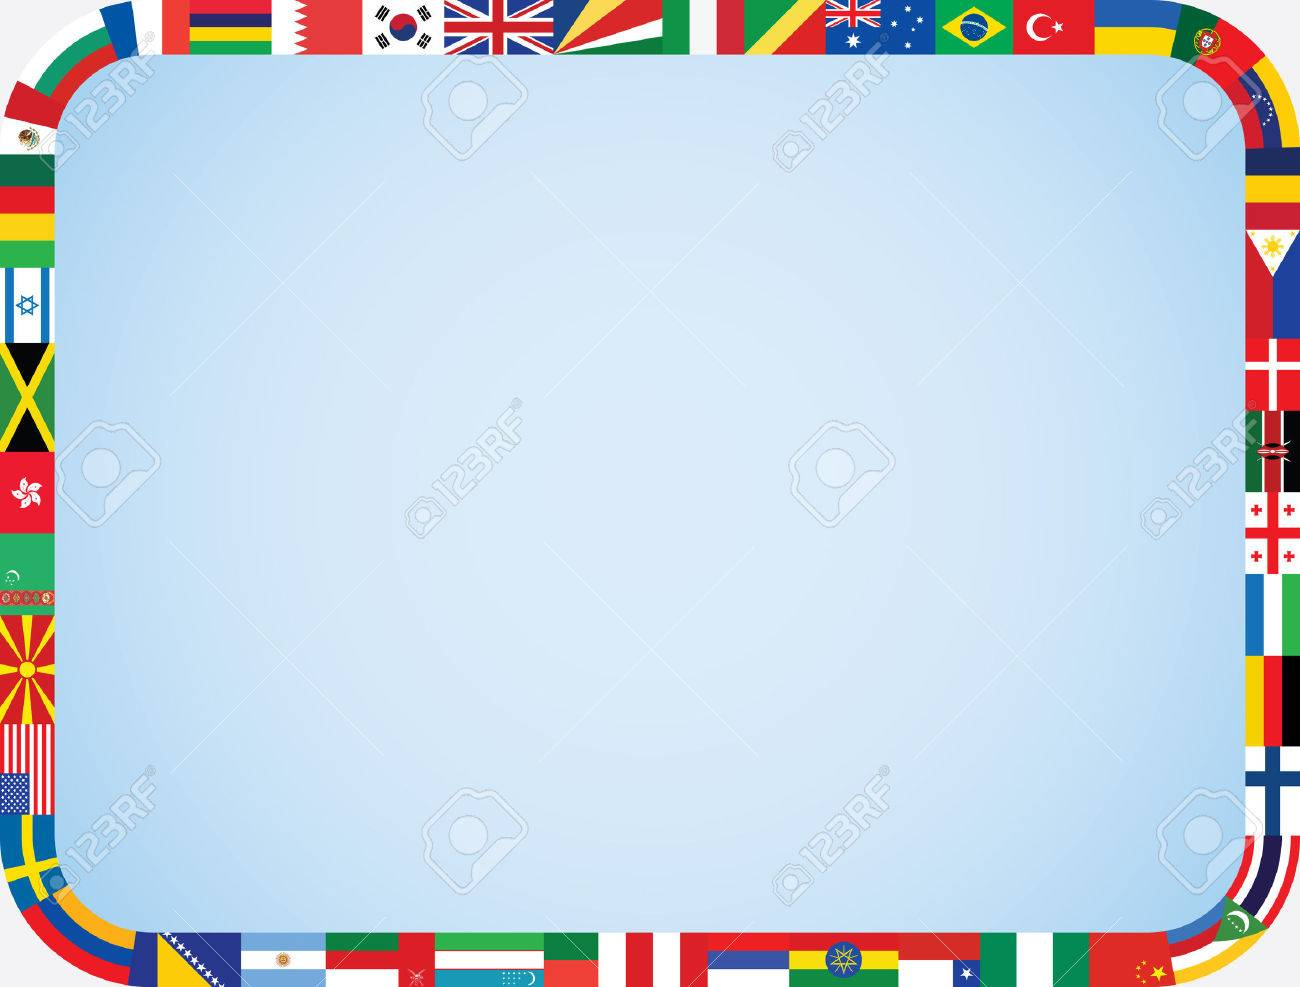 world flags frame with rounded corners vector illustration.